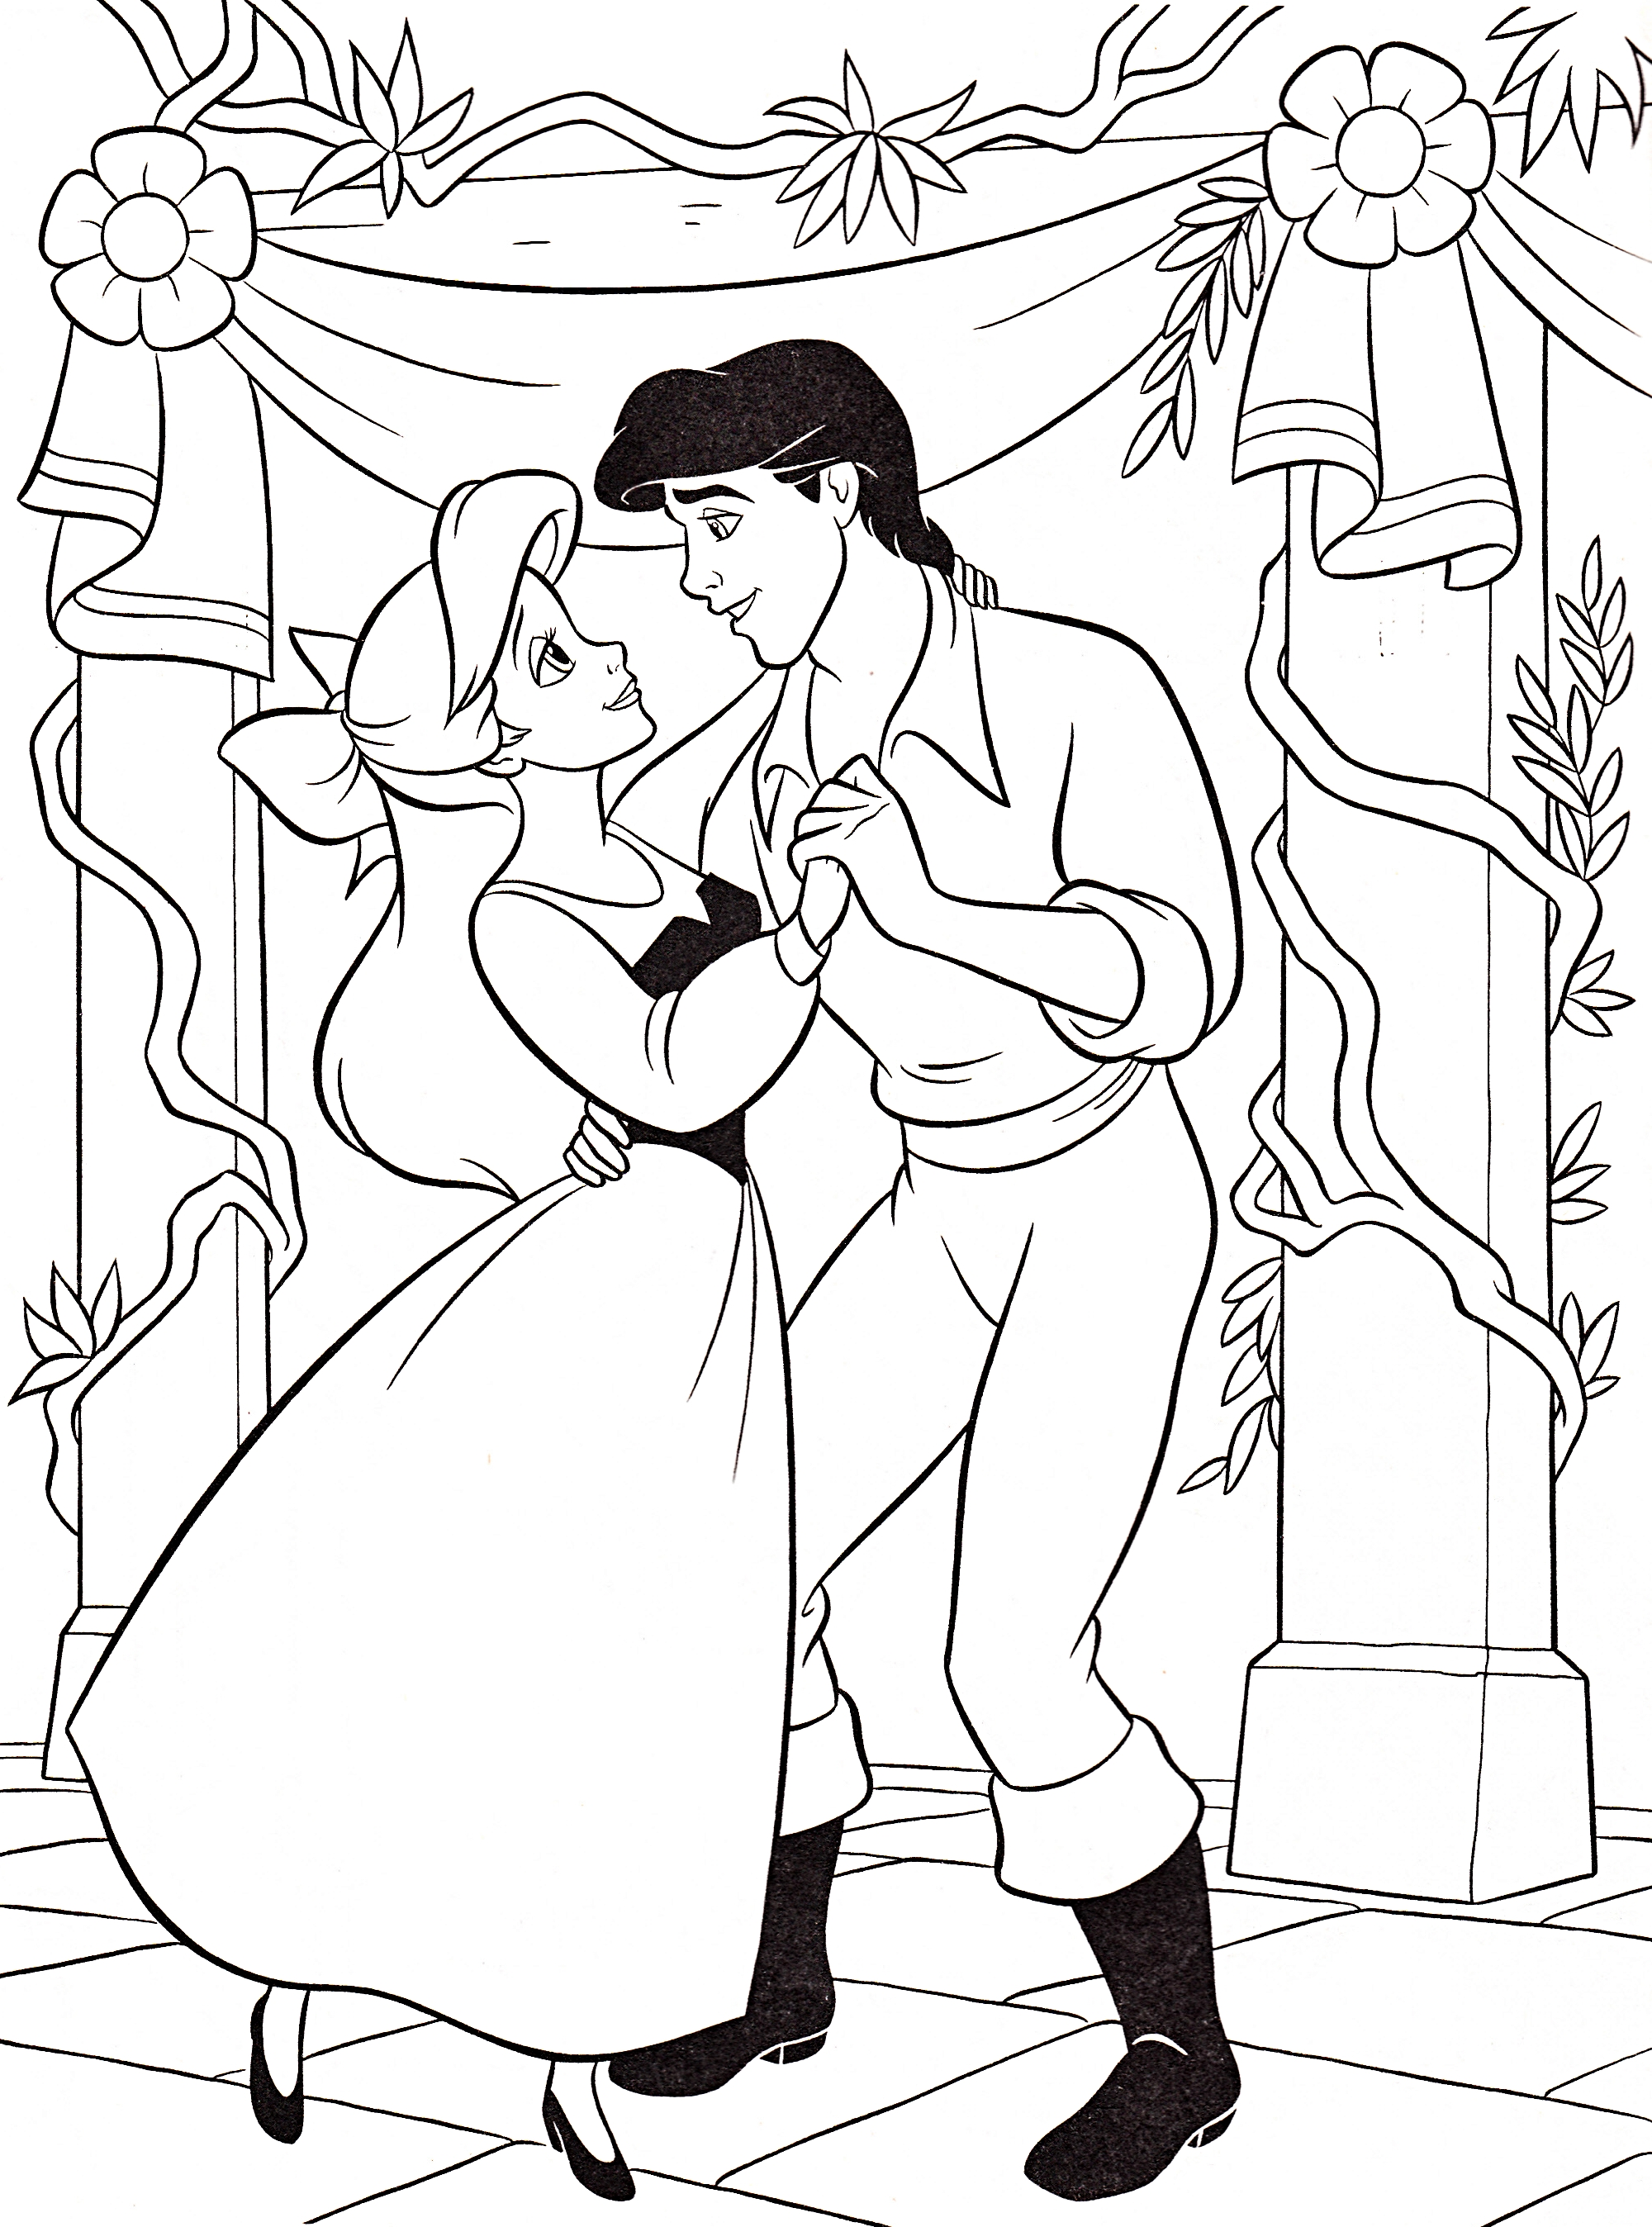 ... Characters Walt Disney Coloring Pages - Princess Ariel & Prince Eric